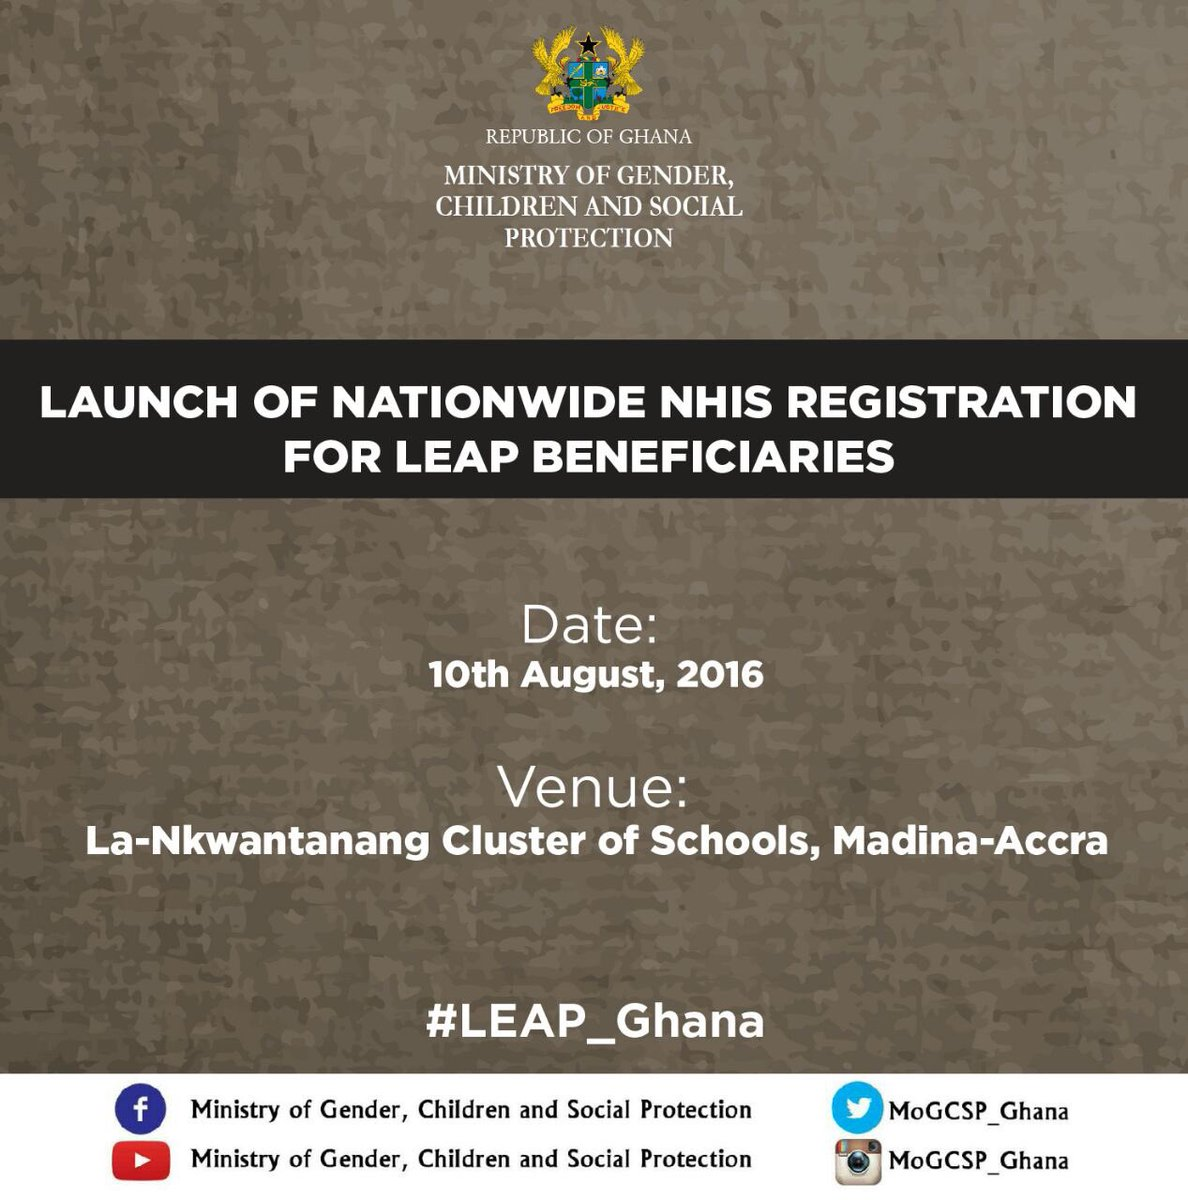 Today, we are launching the Nationwide Registration of LEAP beneficiaries unto the NHIS @NHIS_Ghana